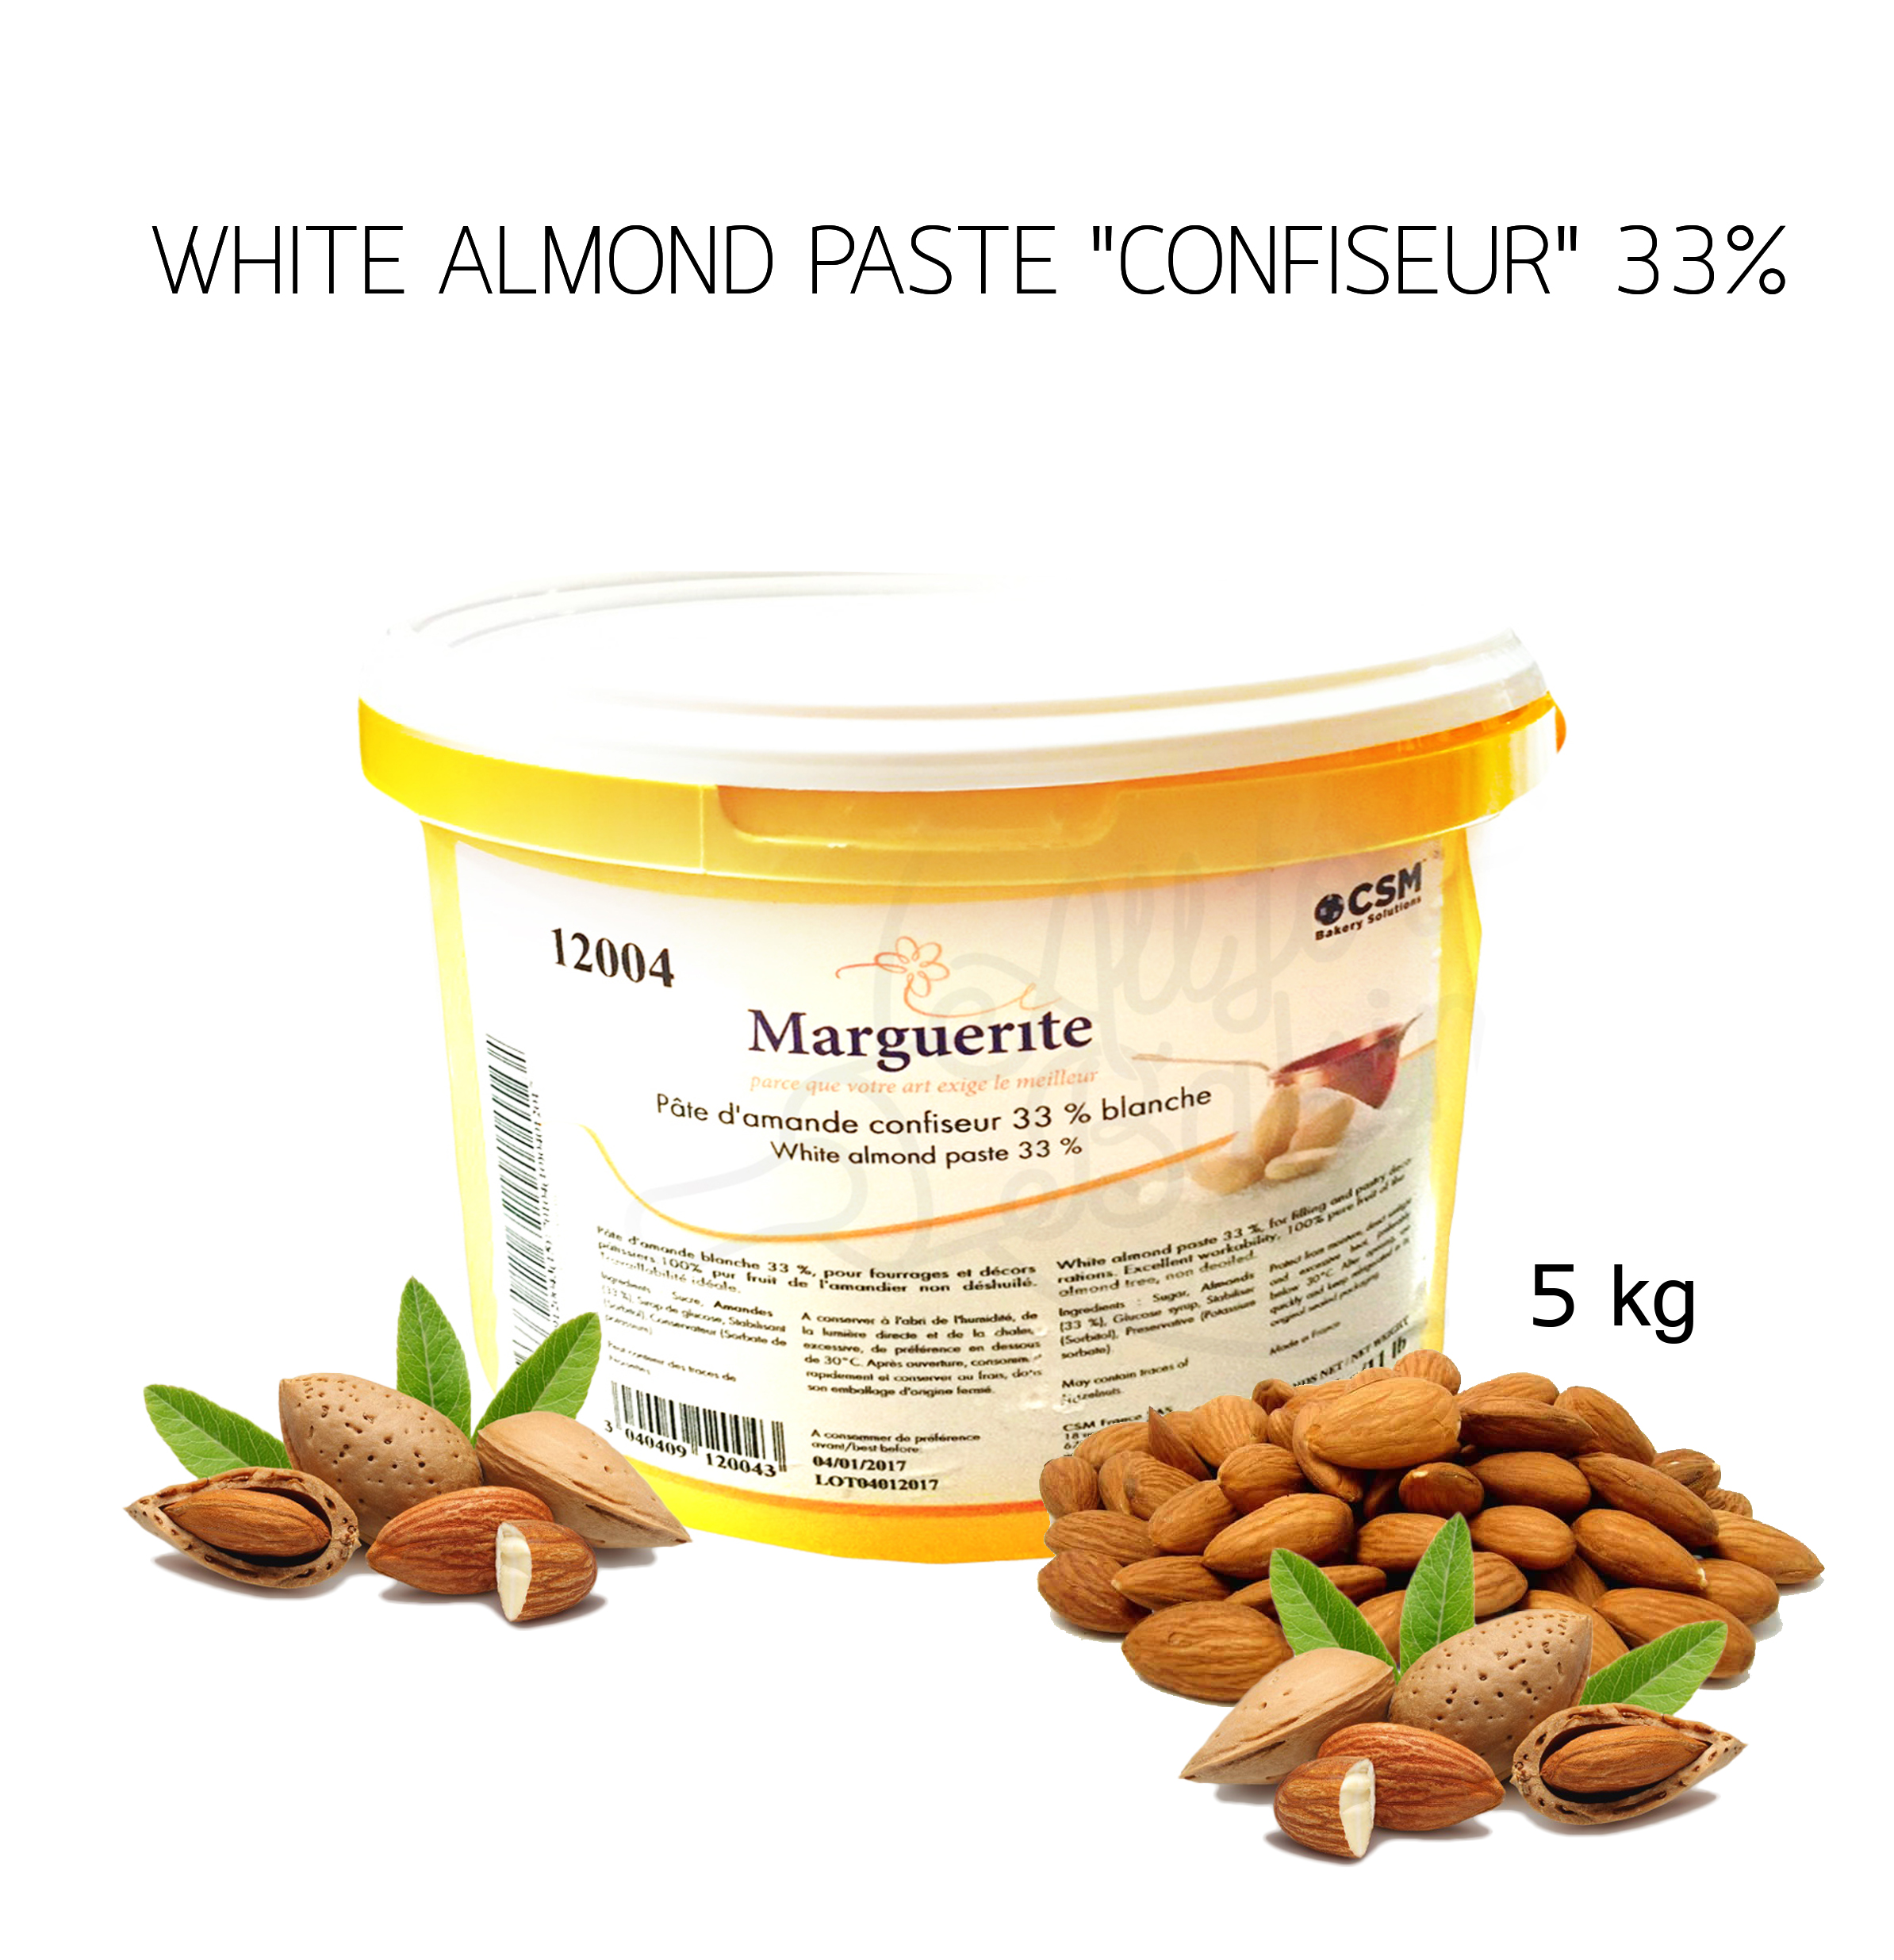 Marguerite fondant33% almond paste 5kg